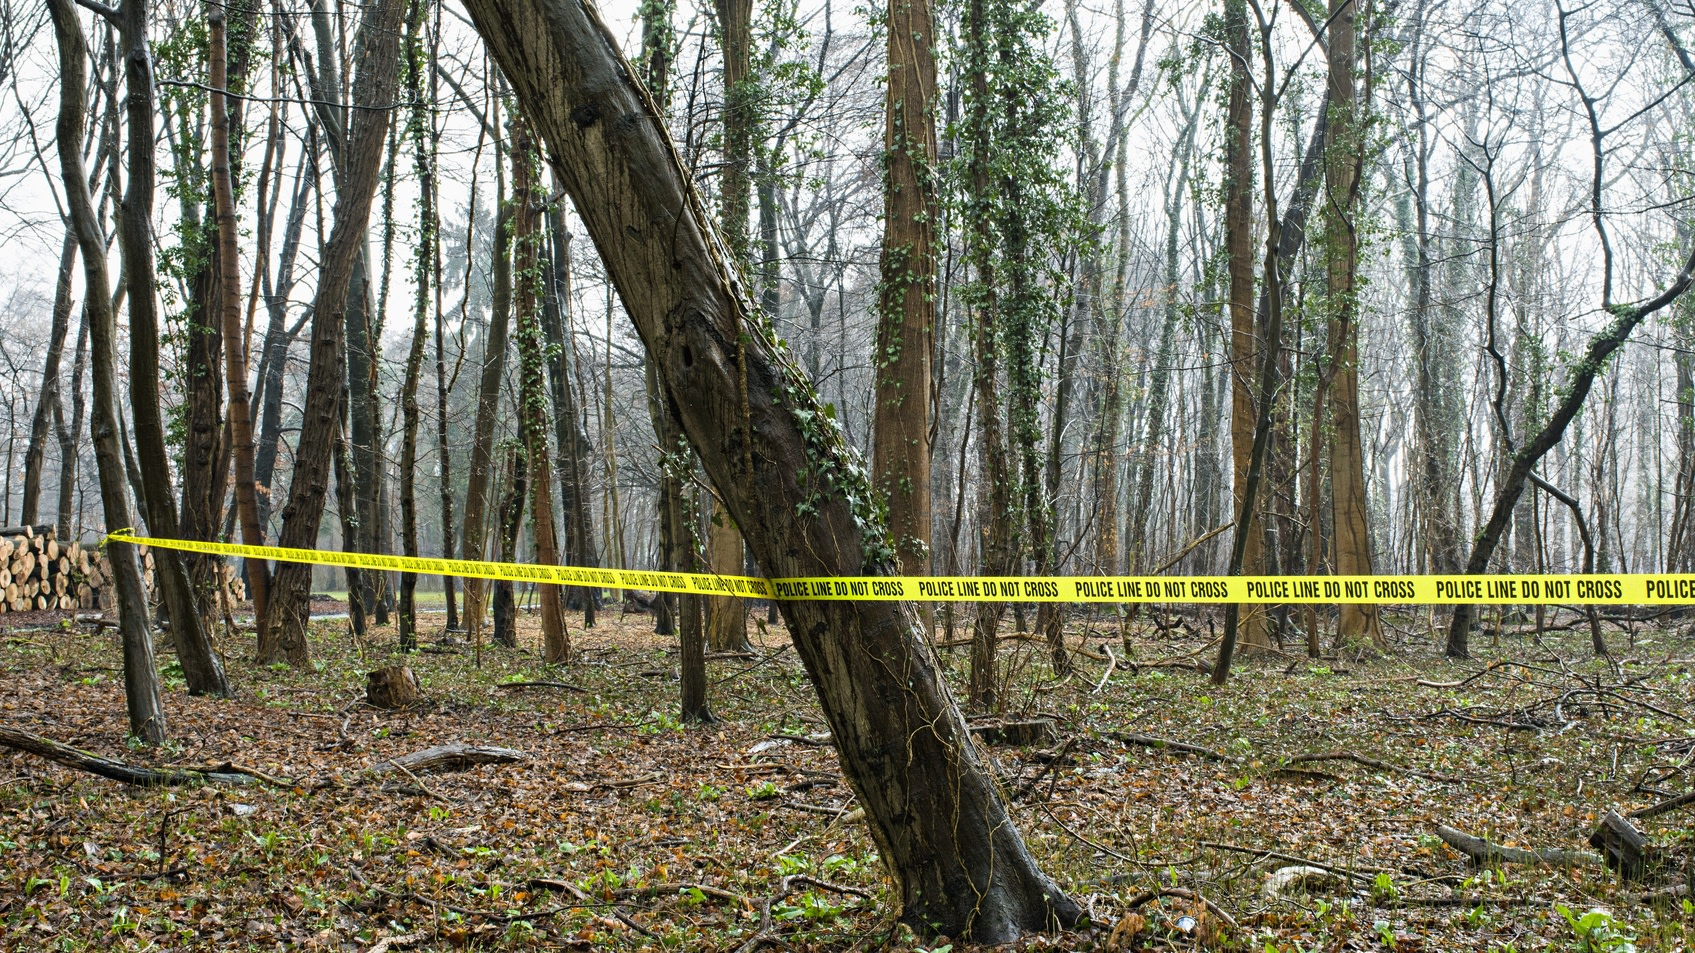 12-Year-Old Atlanta Boy Found Shot To Death In Woods Near Home, Family Pleads For Answers